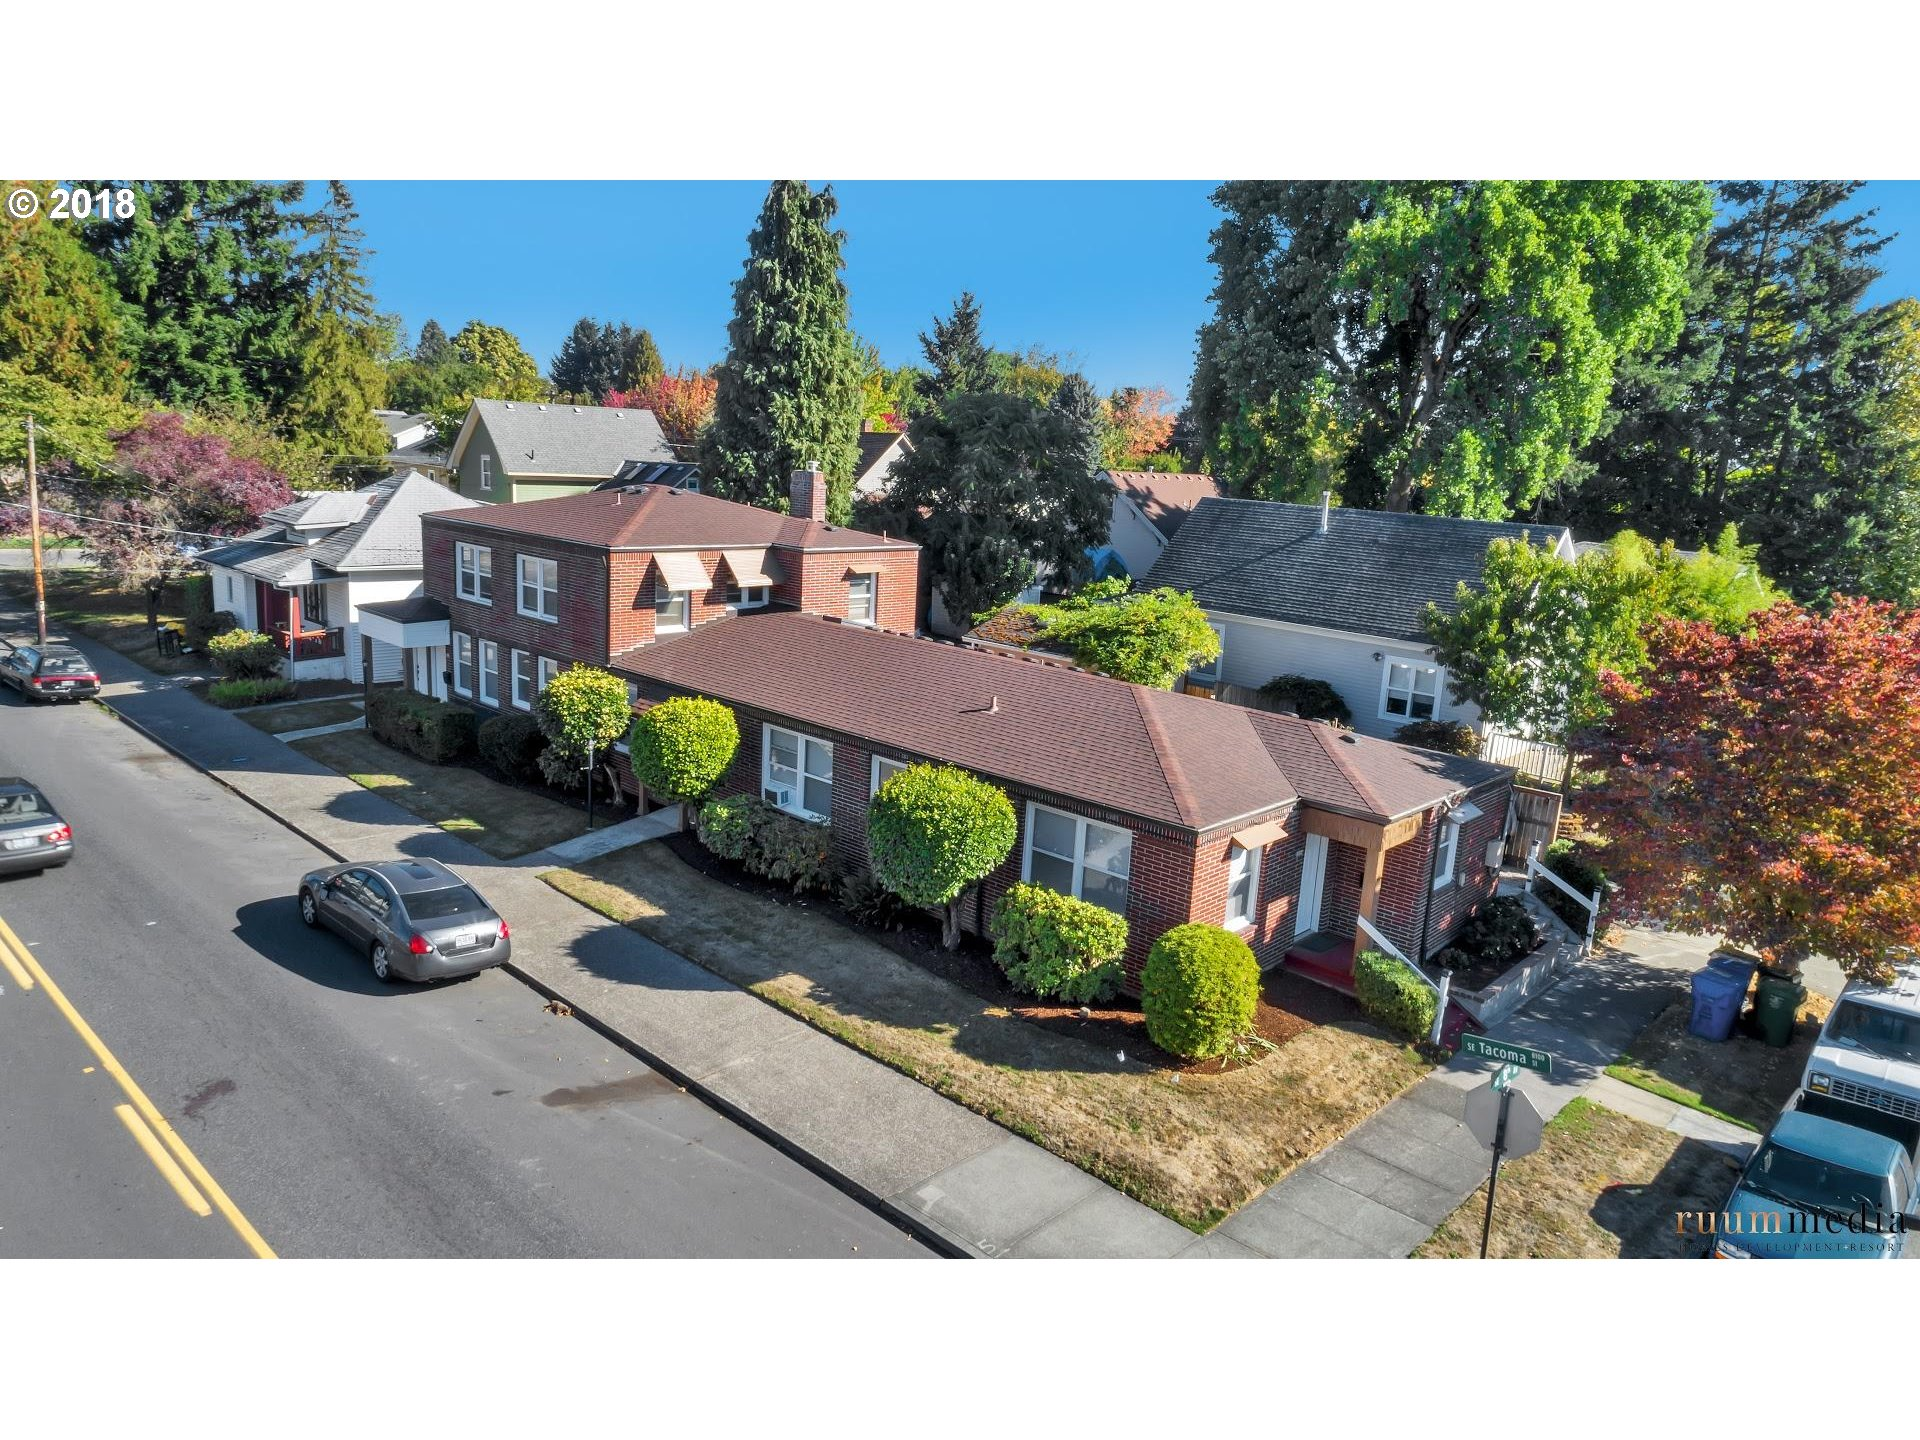 Photo for 8104 SE 8TH AVE, Portland, OR 97202 (MLS # 18531764)